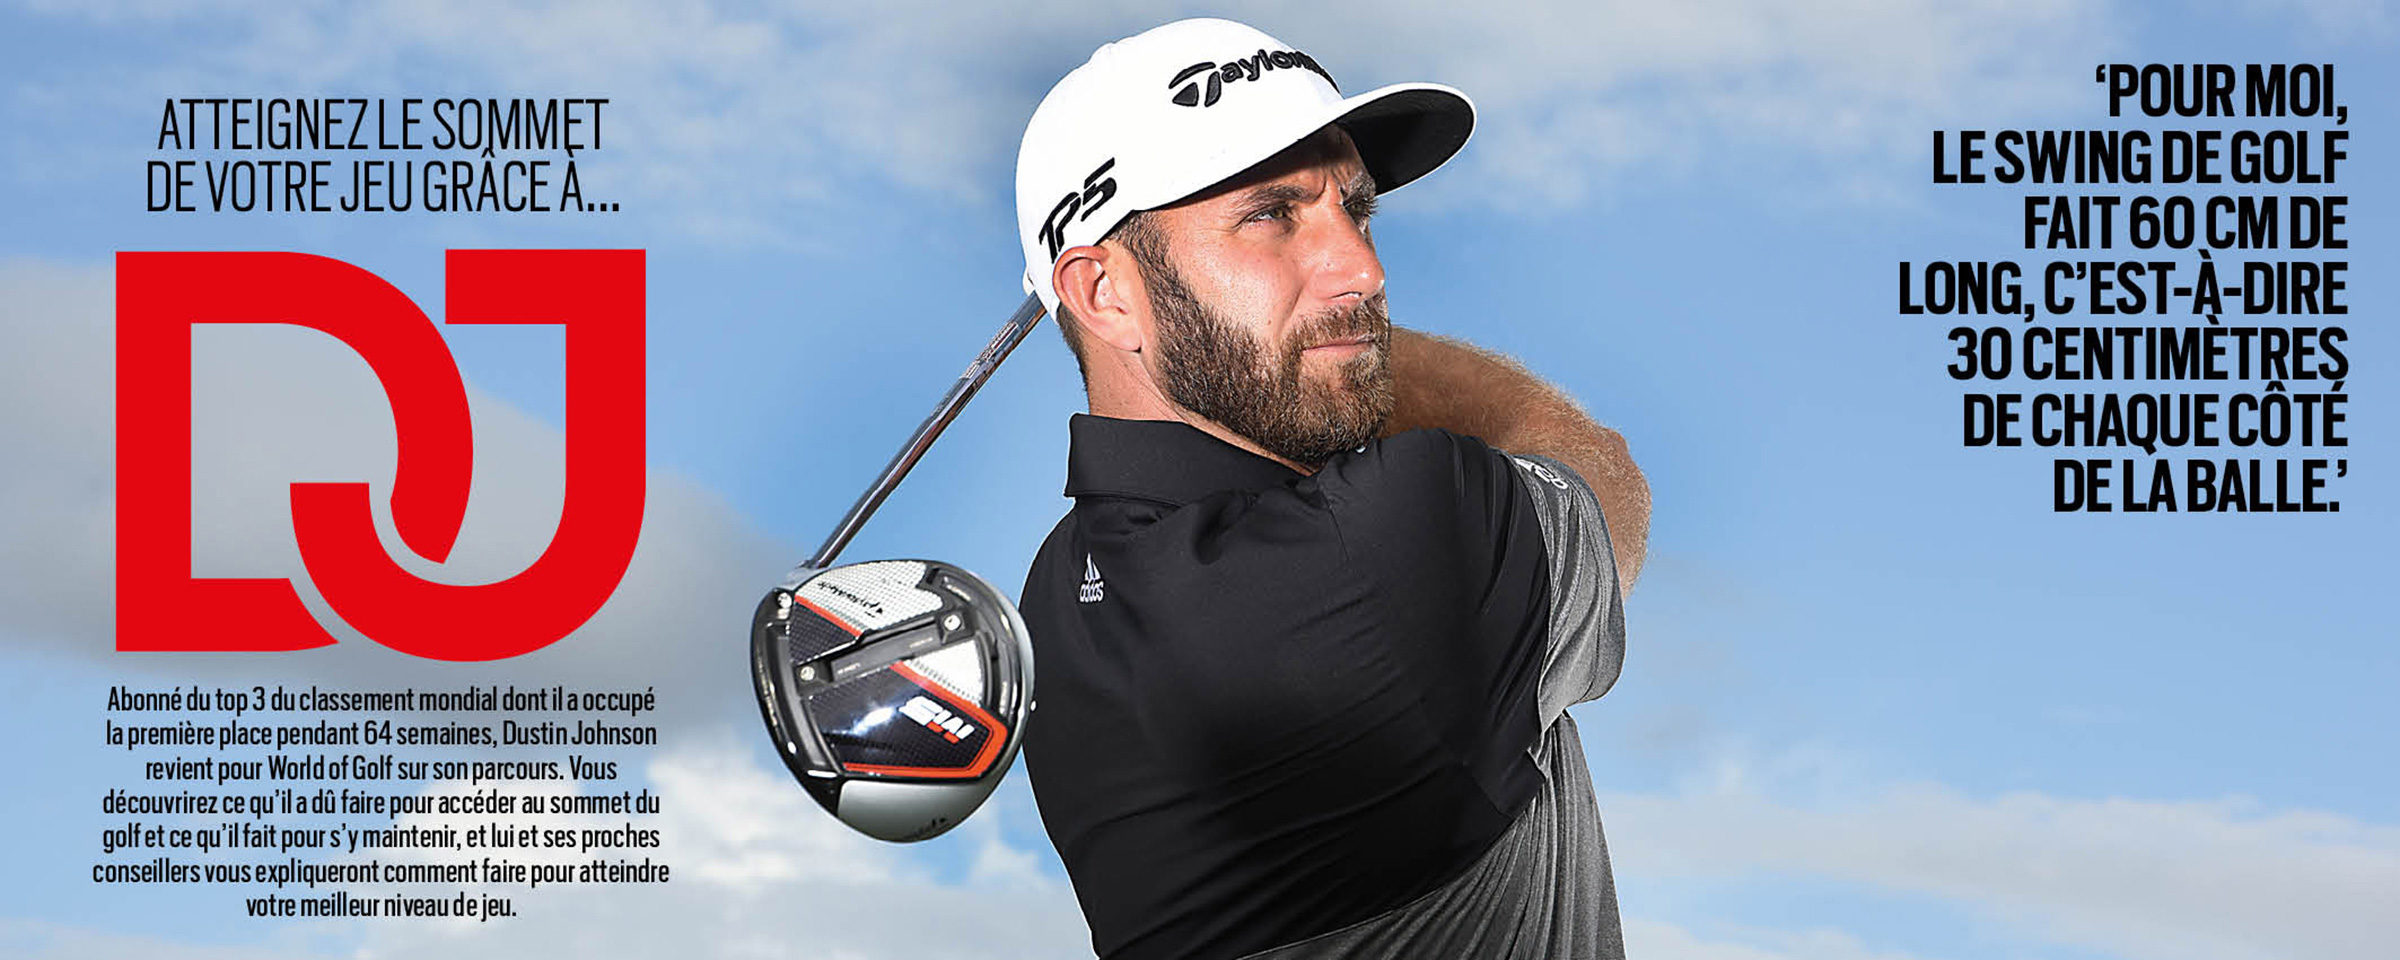 L'ascension de Dustin Johnson